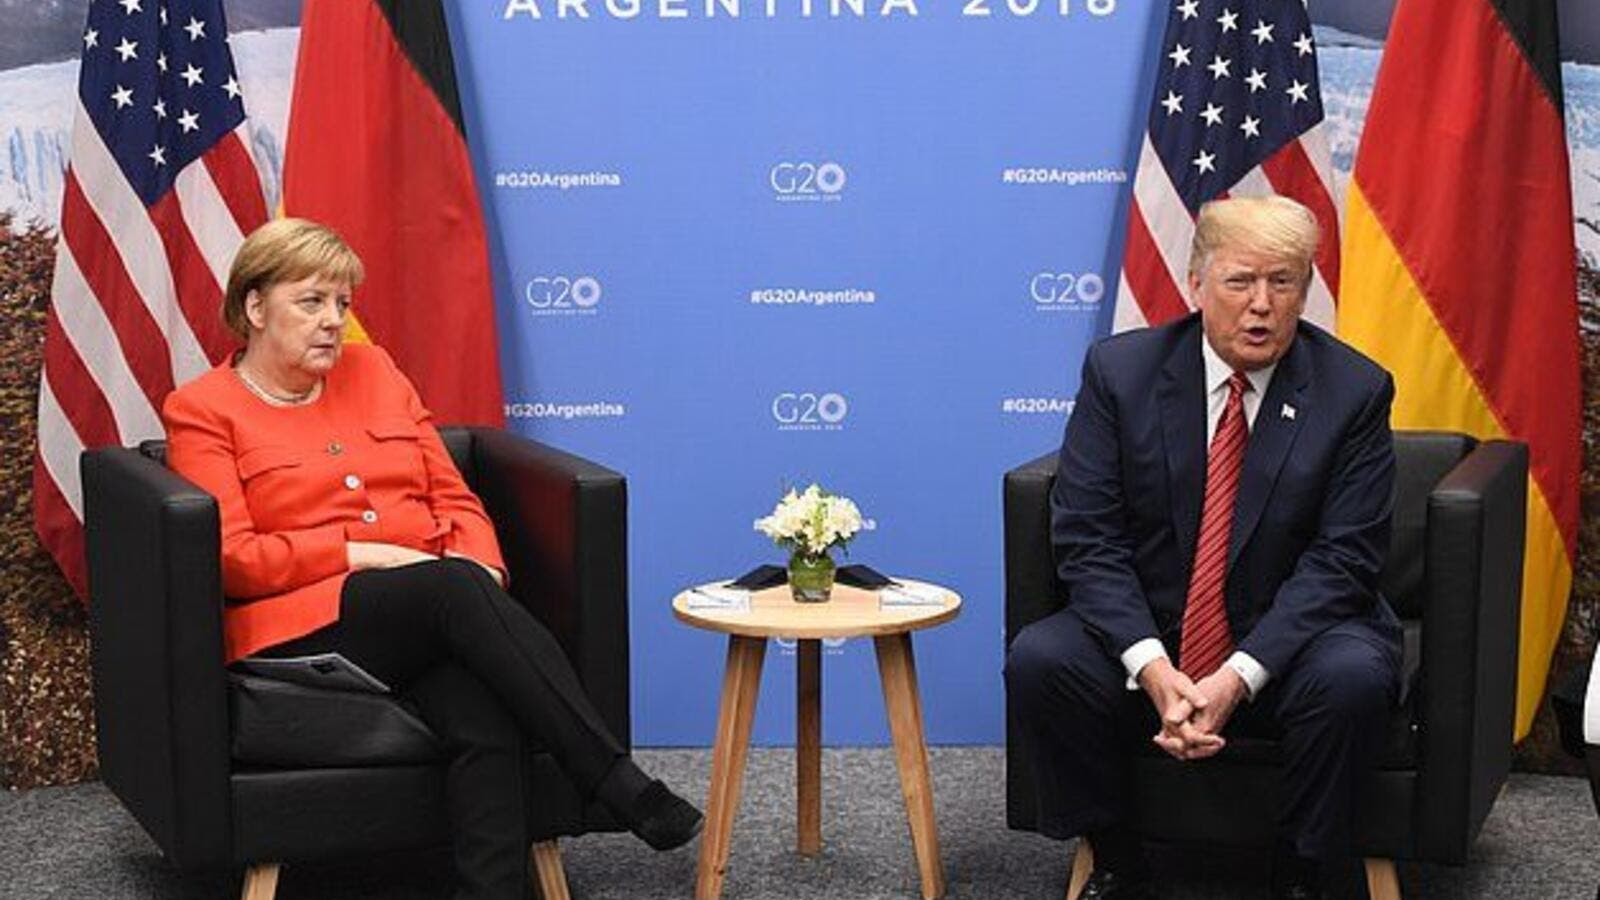 Angela Merkel looks less than impressed with Donald Trump during a meeting at the G20 Summit in Buenos Aires (AFP)